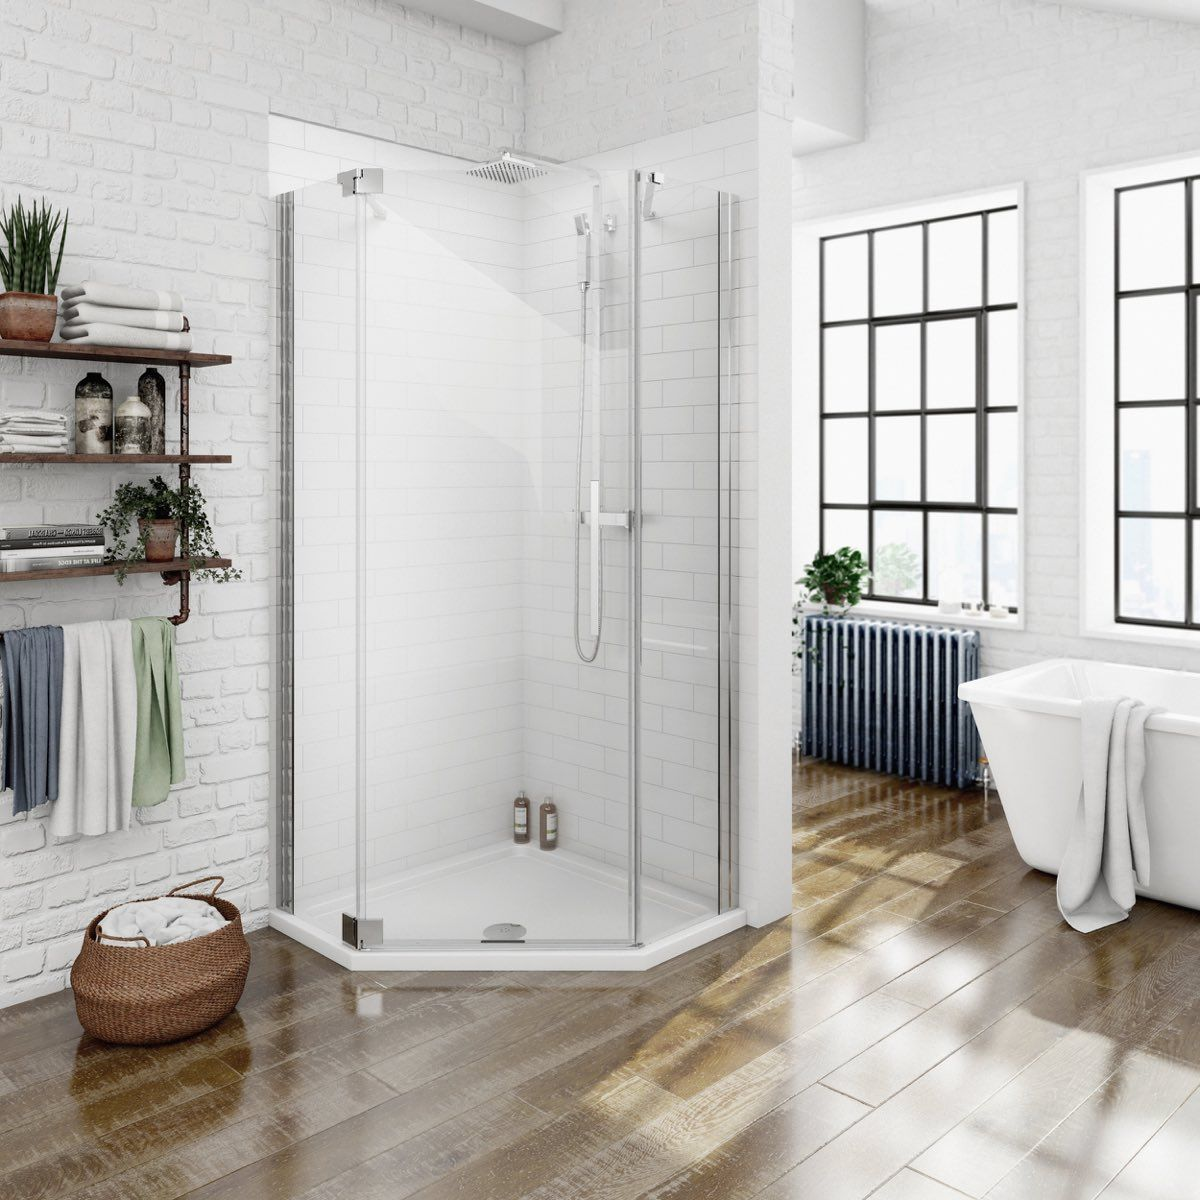 What Are The Things To Consider When Buying A Shower Tray With